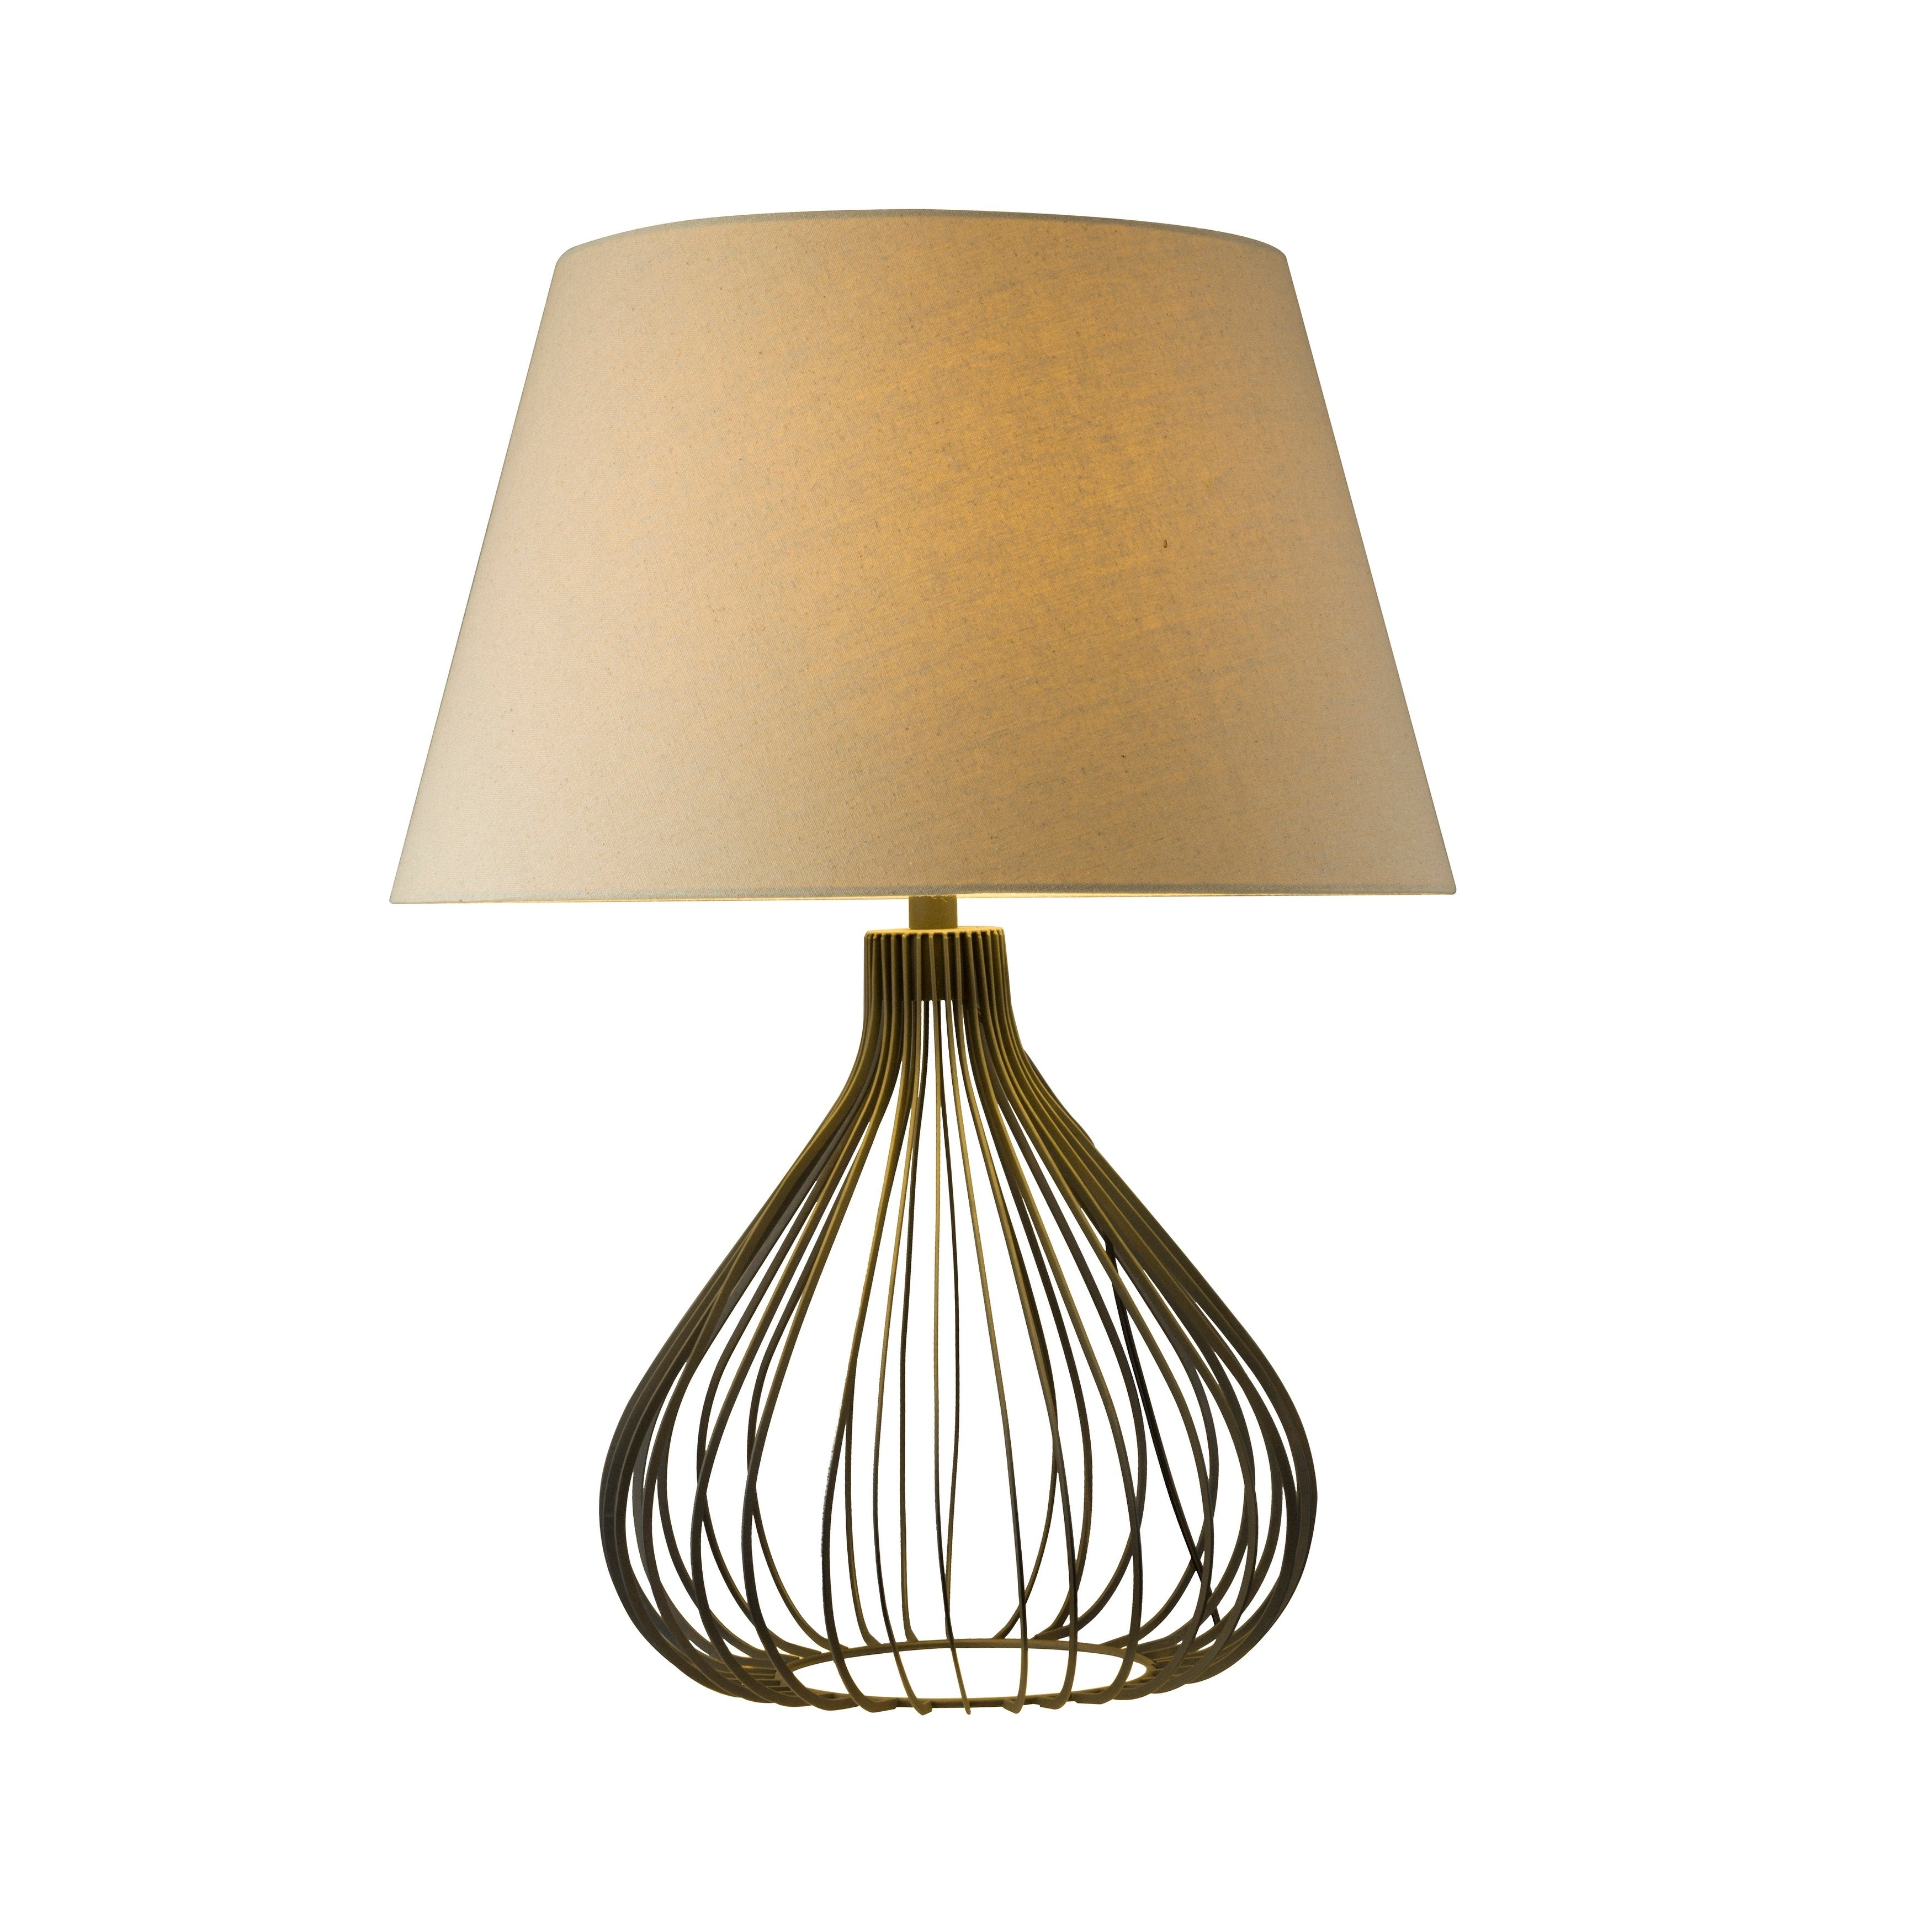 Shop aurelle home contemporary modern metal table lamp on sale free shipping today overstock com 20088074